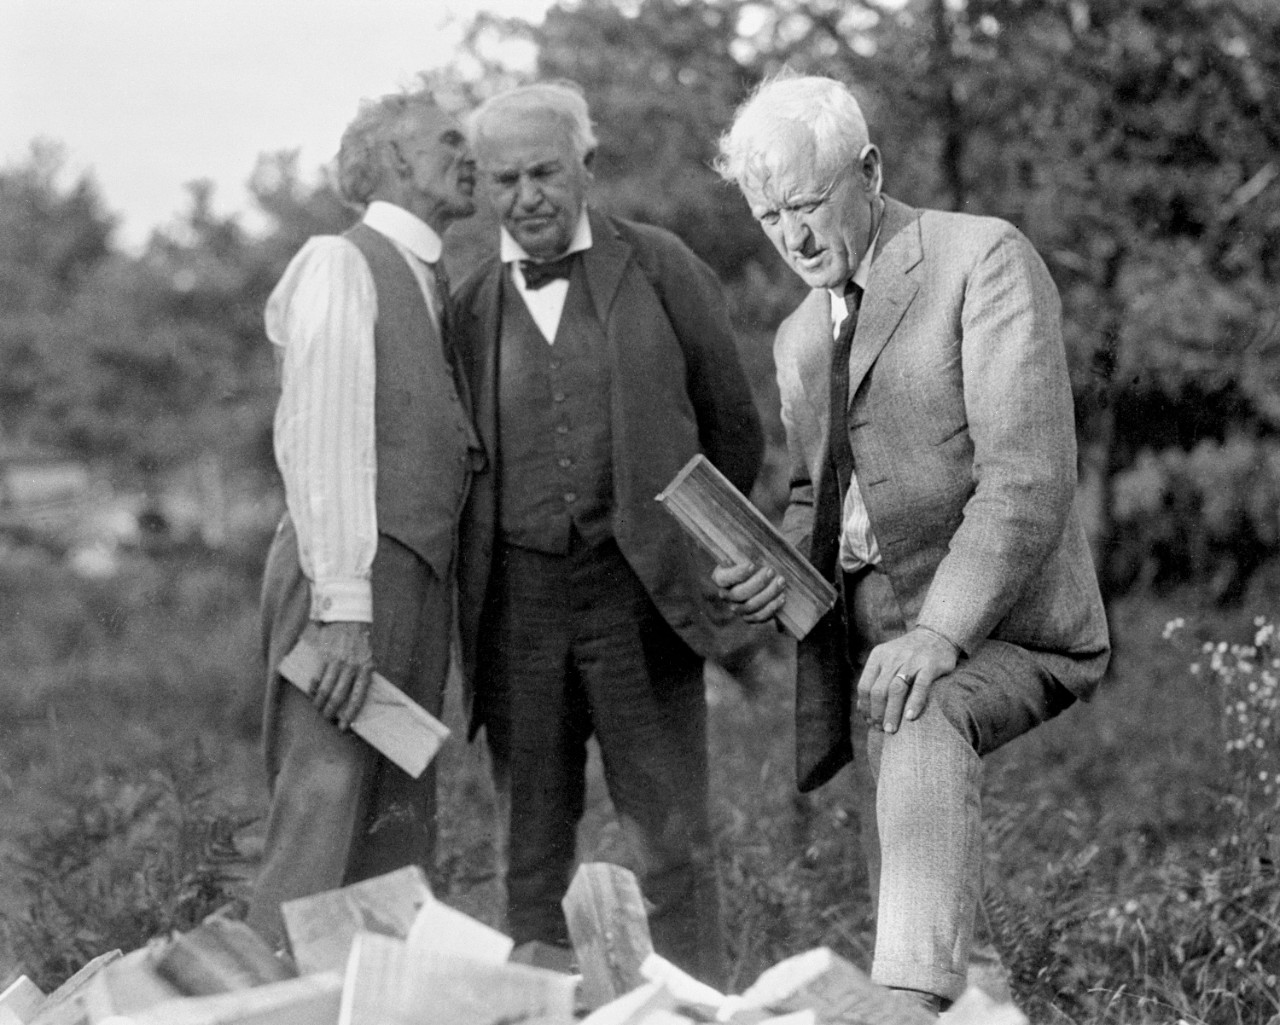 Henry Ford, Thomas Edison, and Ed Kingsford